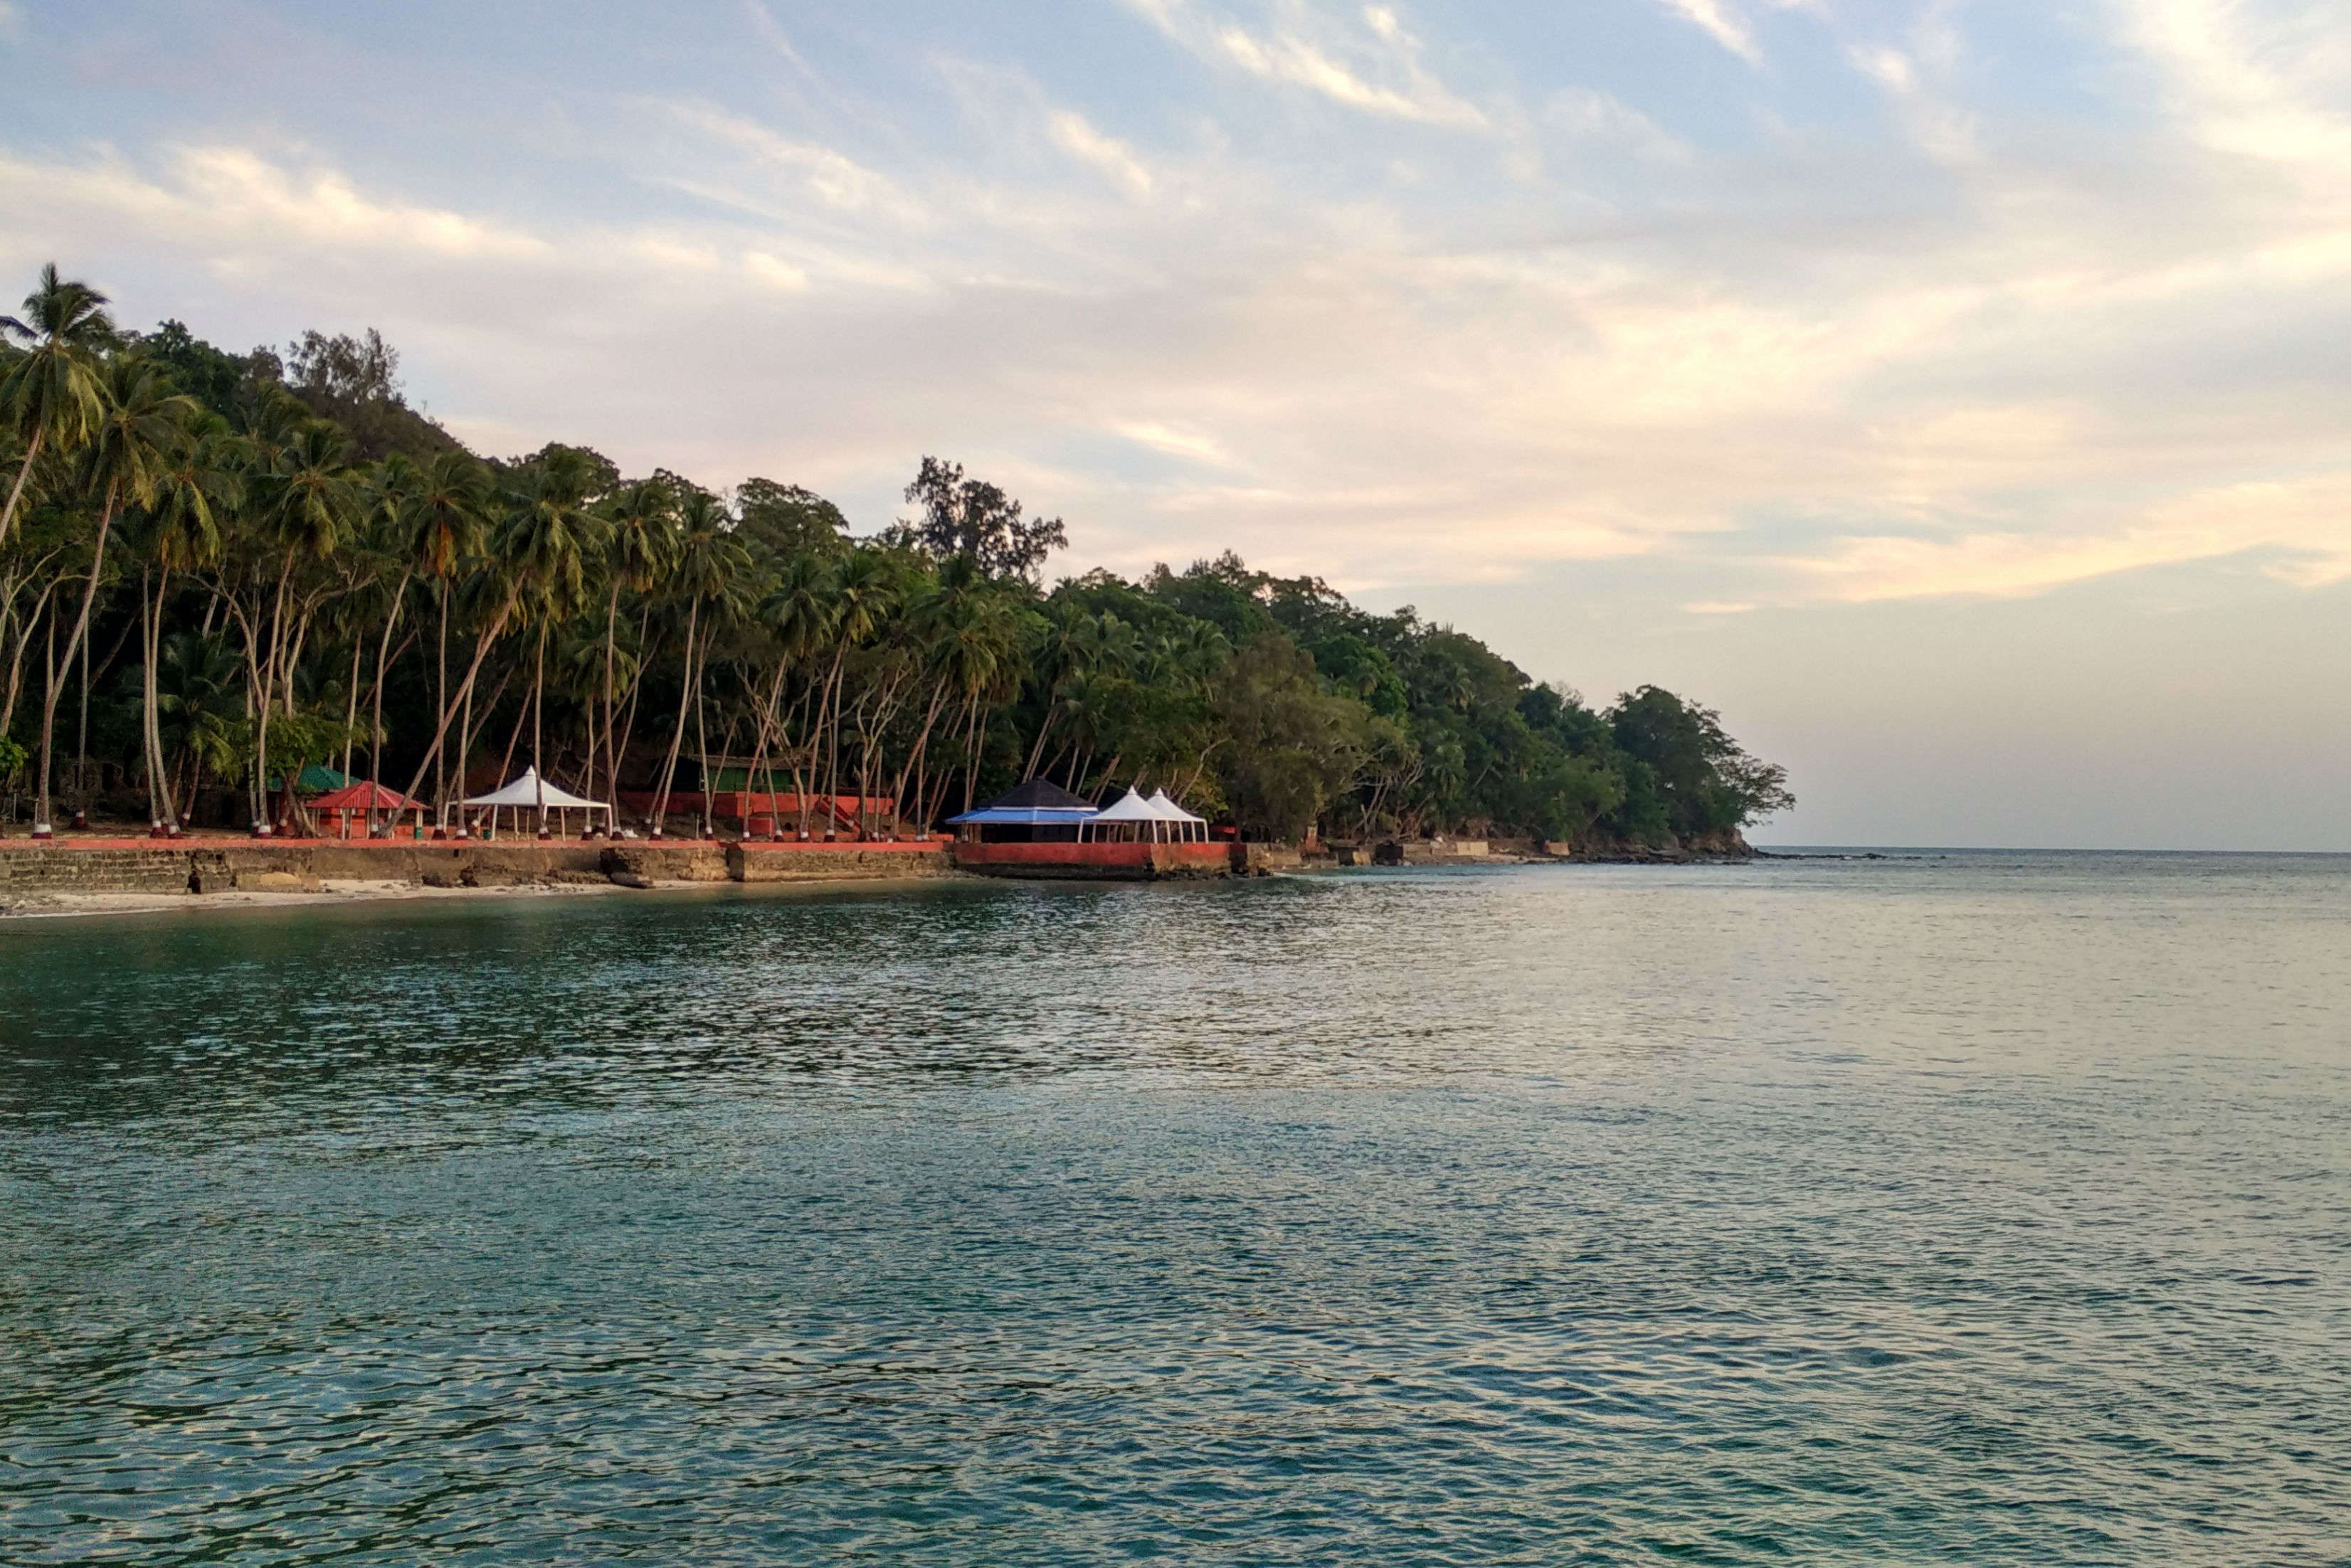 Adventure in the Indian Ocean – things to do in Port Blair